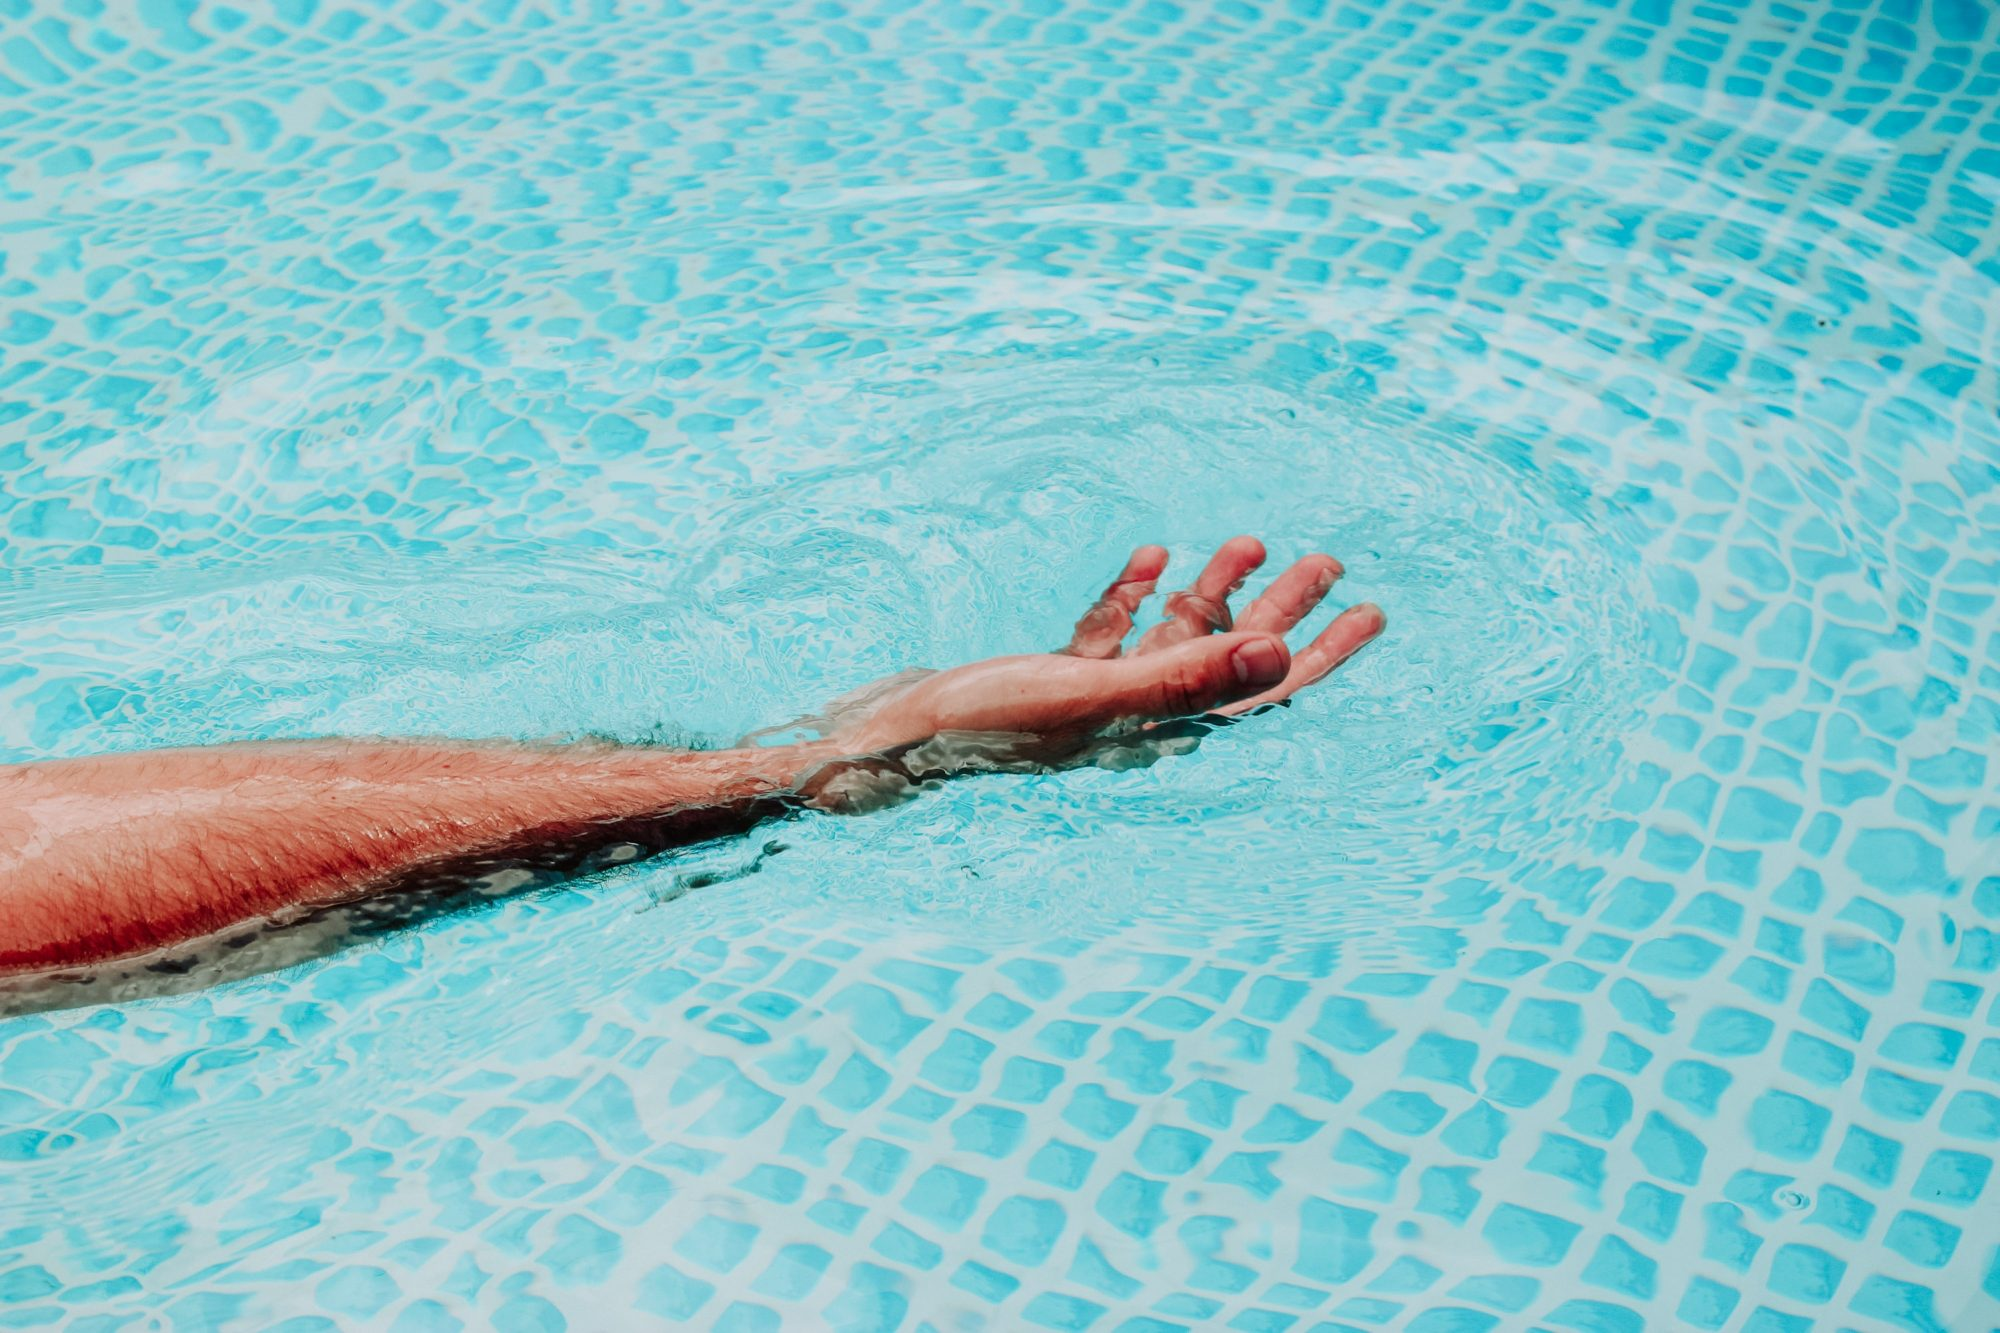 Can You Get Flesh-Eating Bacteria From a Pool?